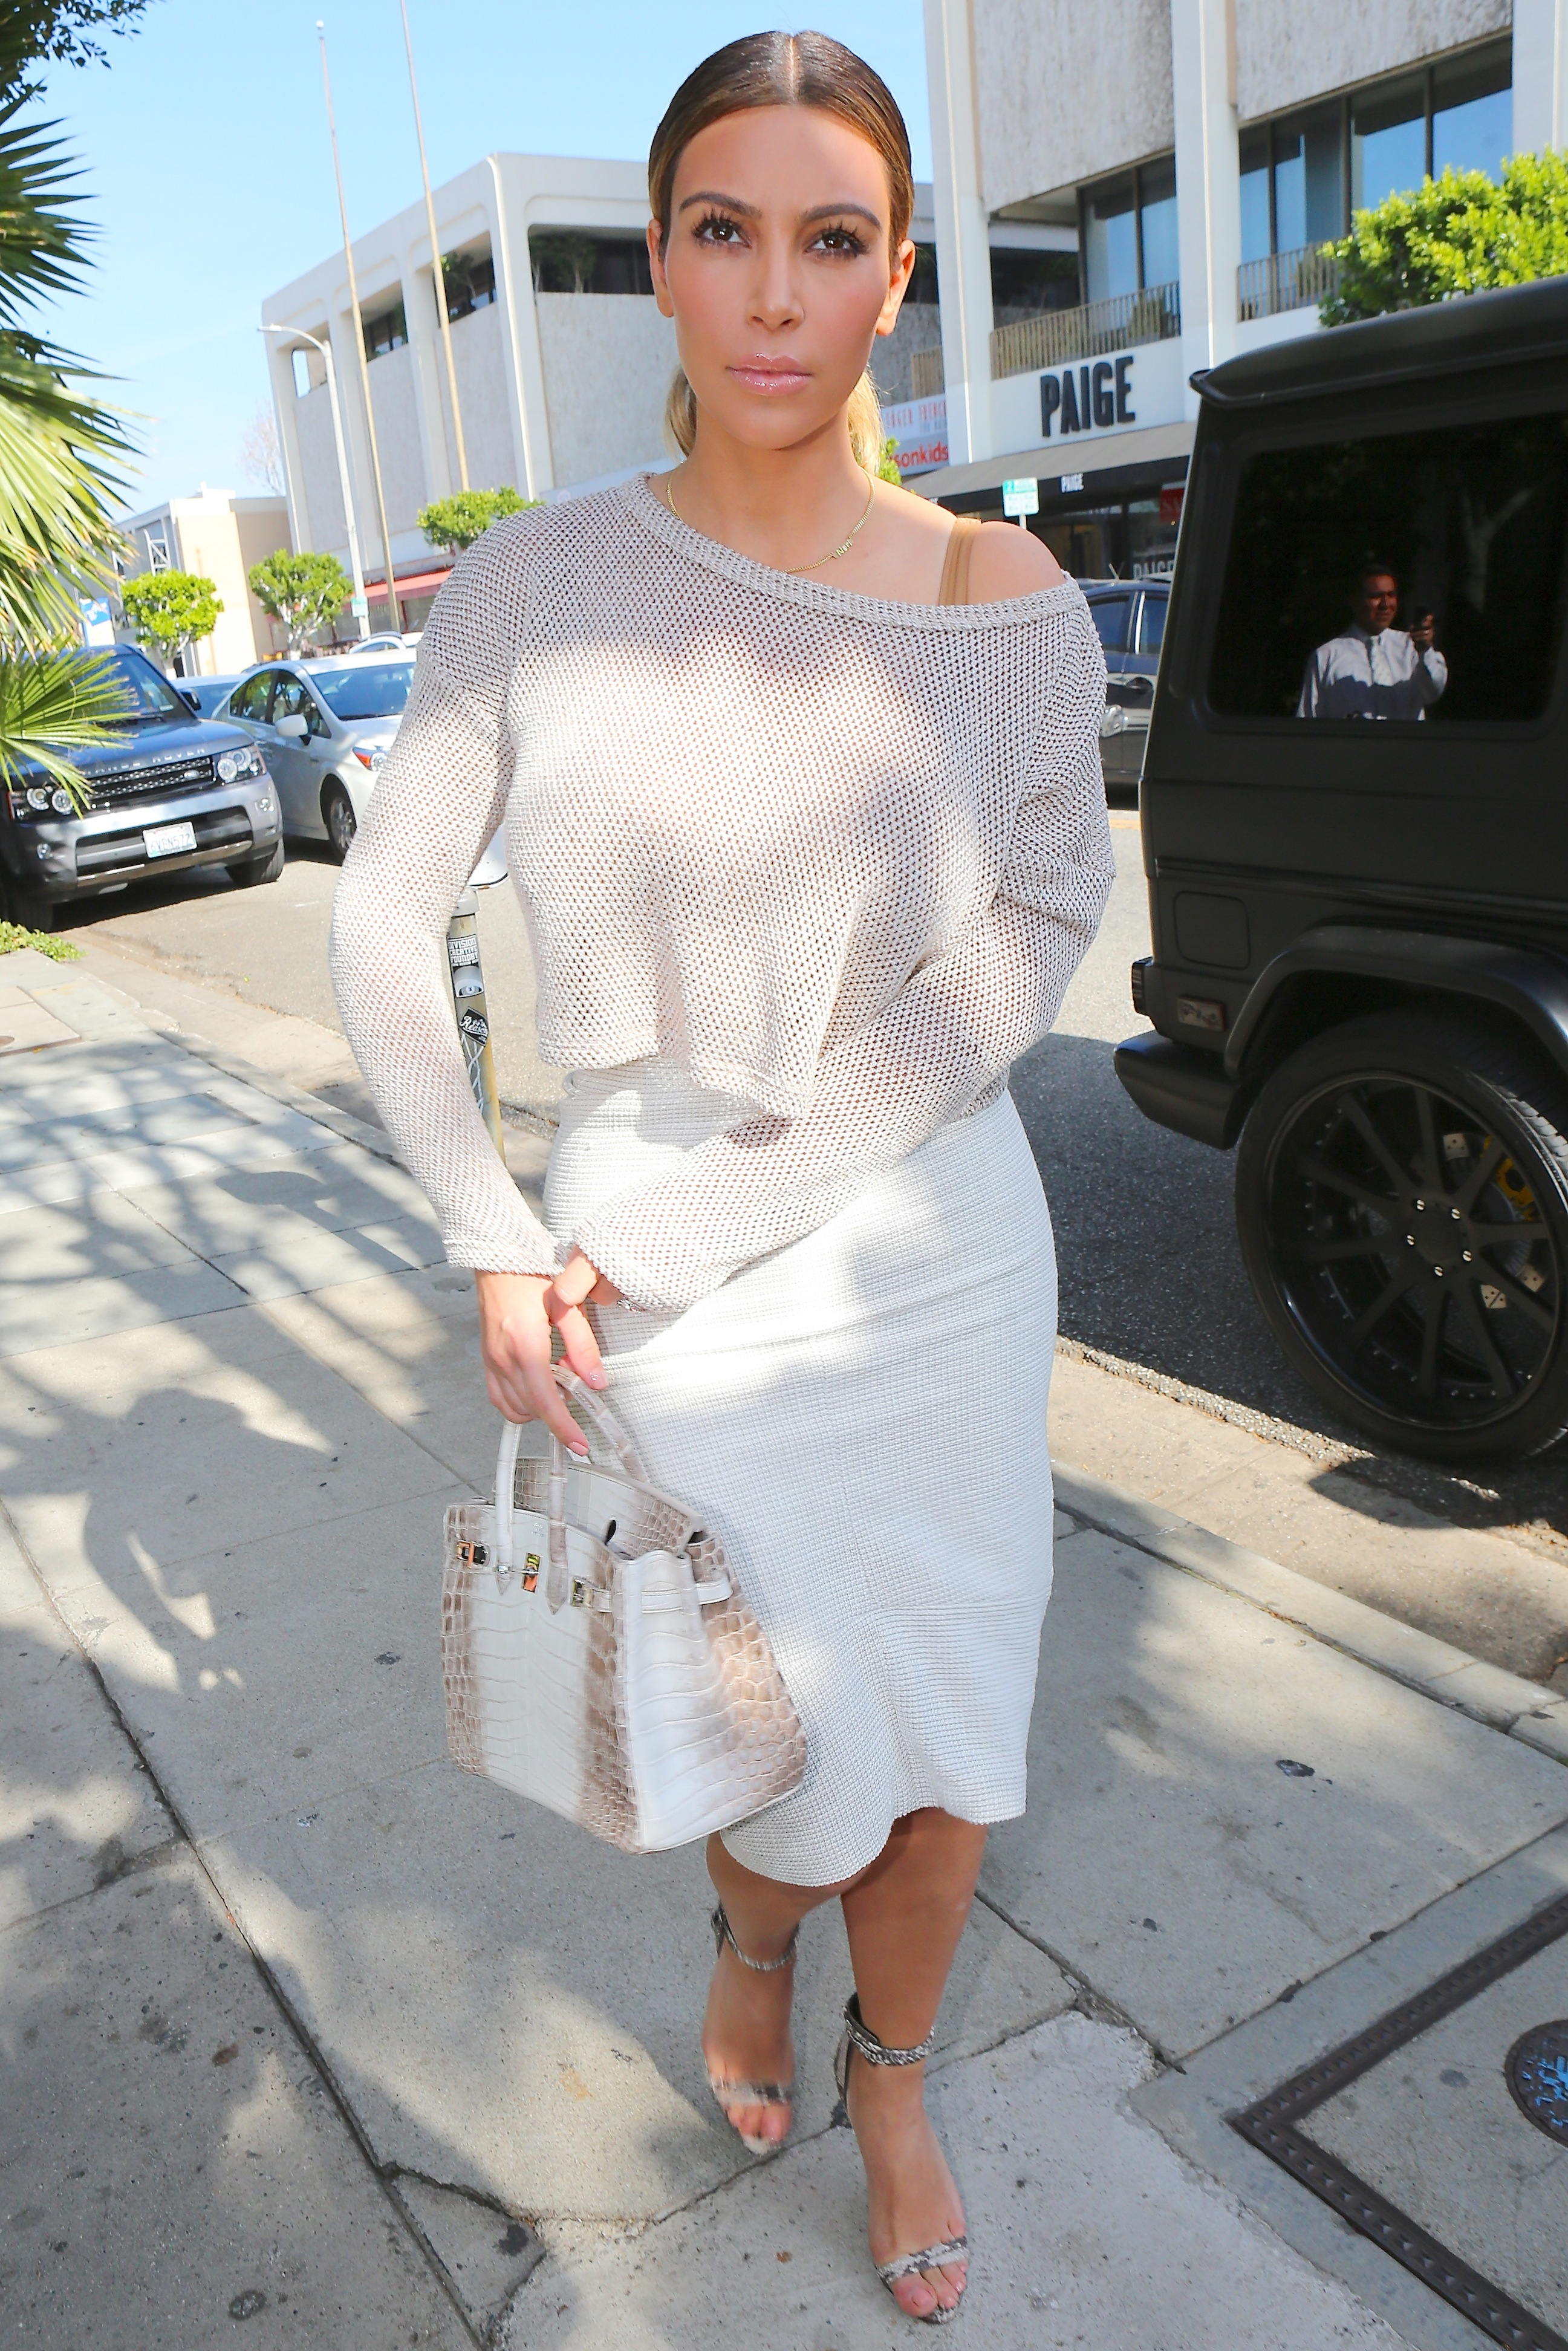 Kim Kardashian Shows Off Her Curves in a Tight Skirt